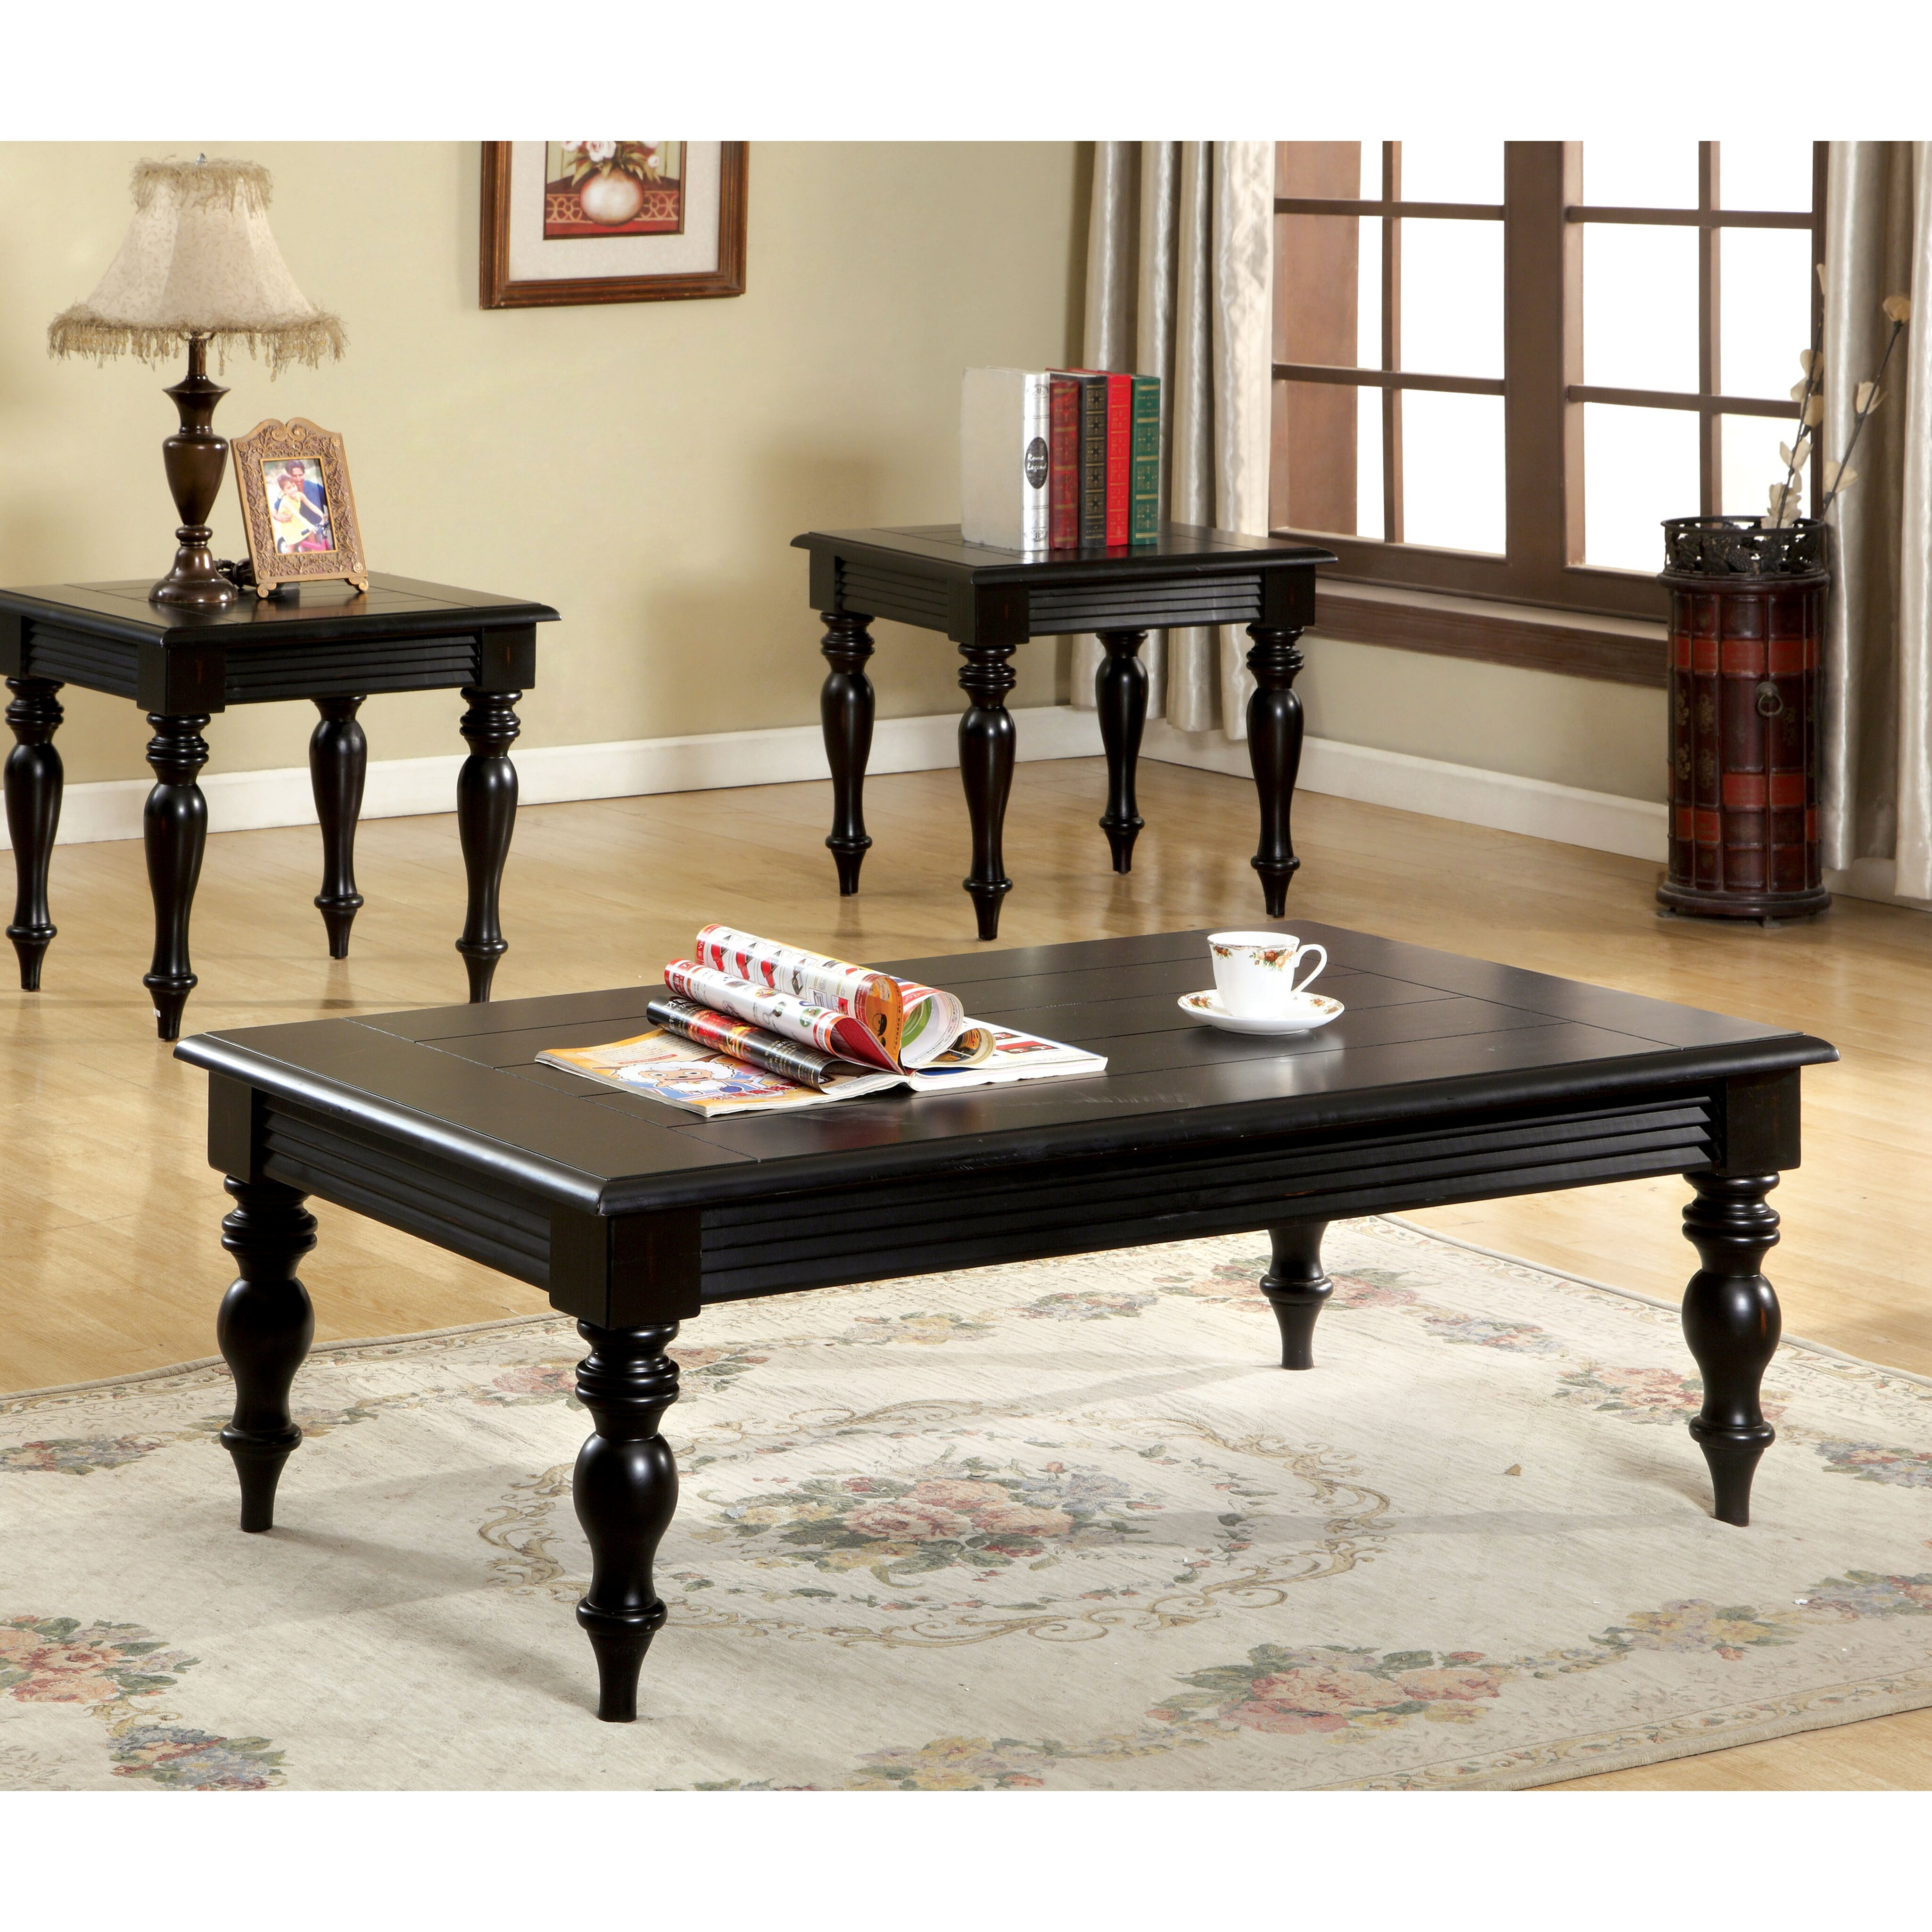 hokku designs degrei 3 piece coffee table set reviews wayfair. Black Bedroom Furniture Sets. Home Design Ideas